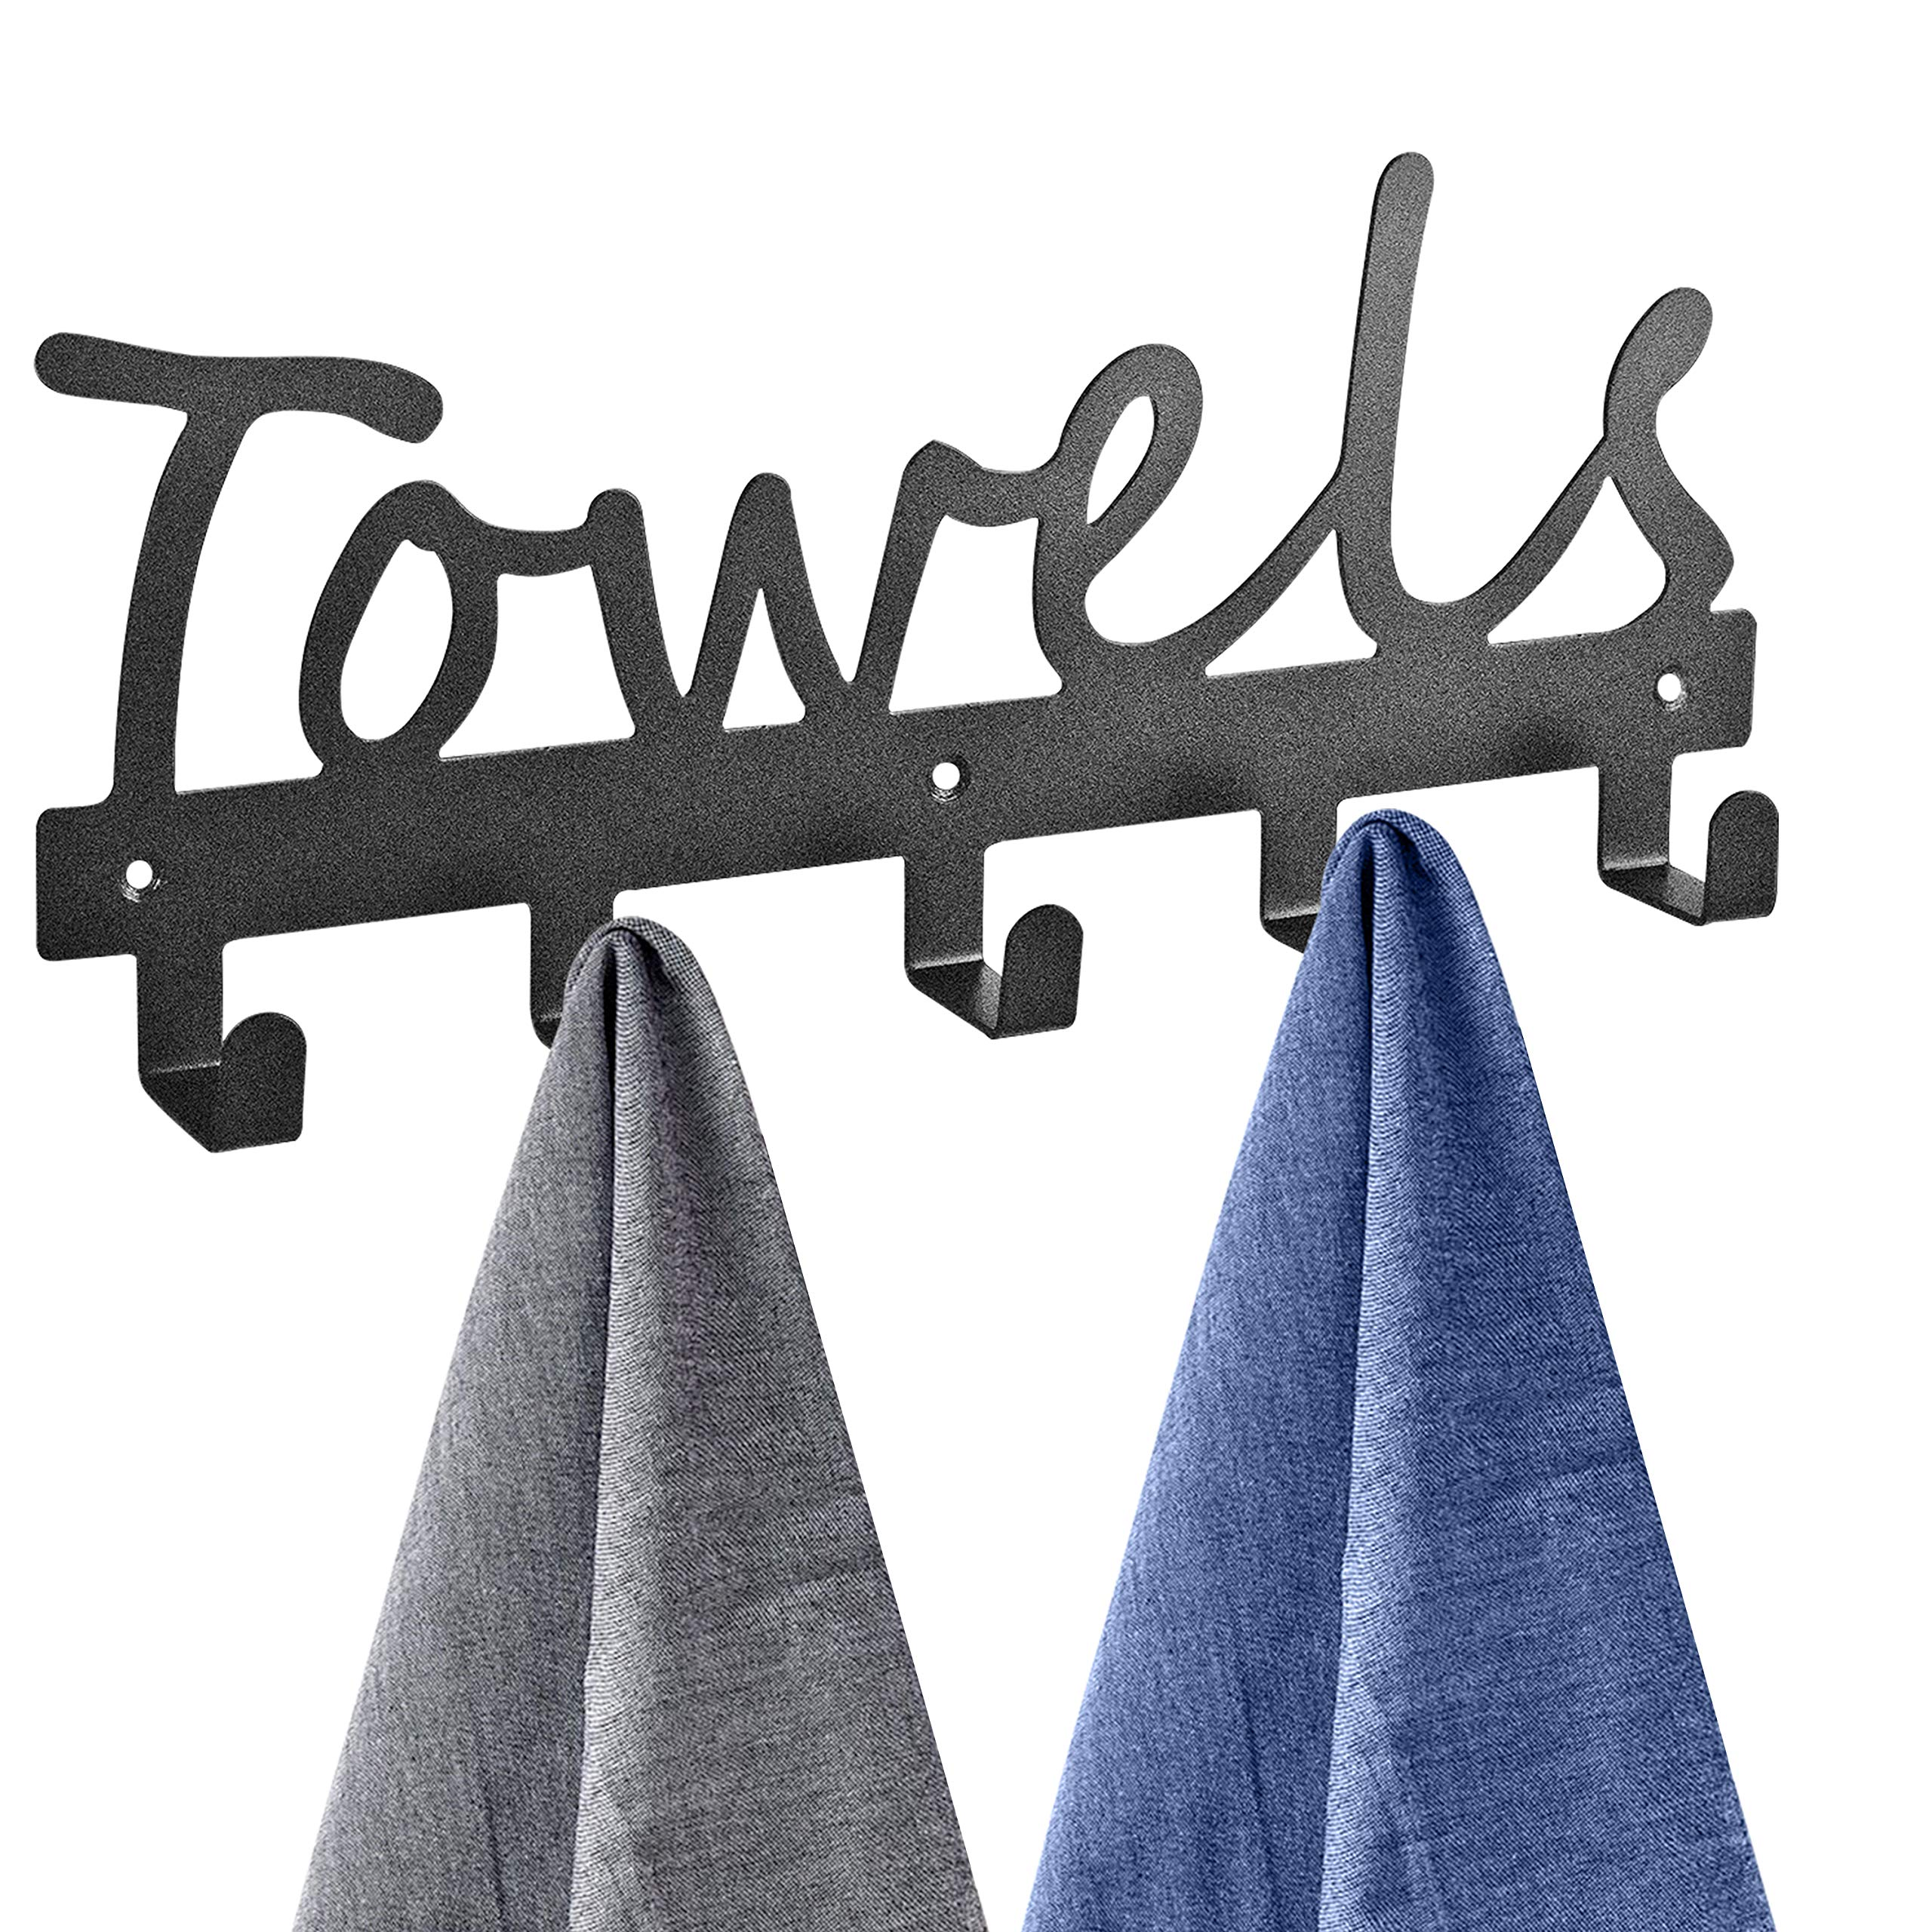 Towel Racks 5 Hooks Black Sandblasted Robe Hooks Wall Mount Towel Holder Black Metal Towel Racks Rustproof and Waterproof for Kitchen Storage Organizer Rack, Bathroom Towels, Robes, Clothing by Topspeeder